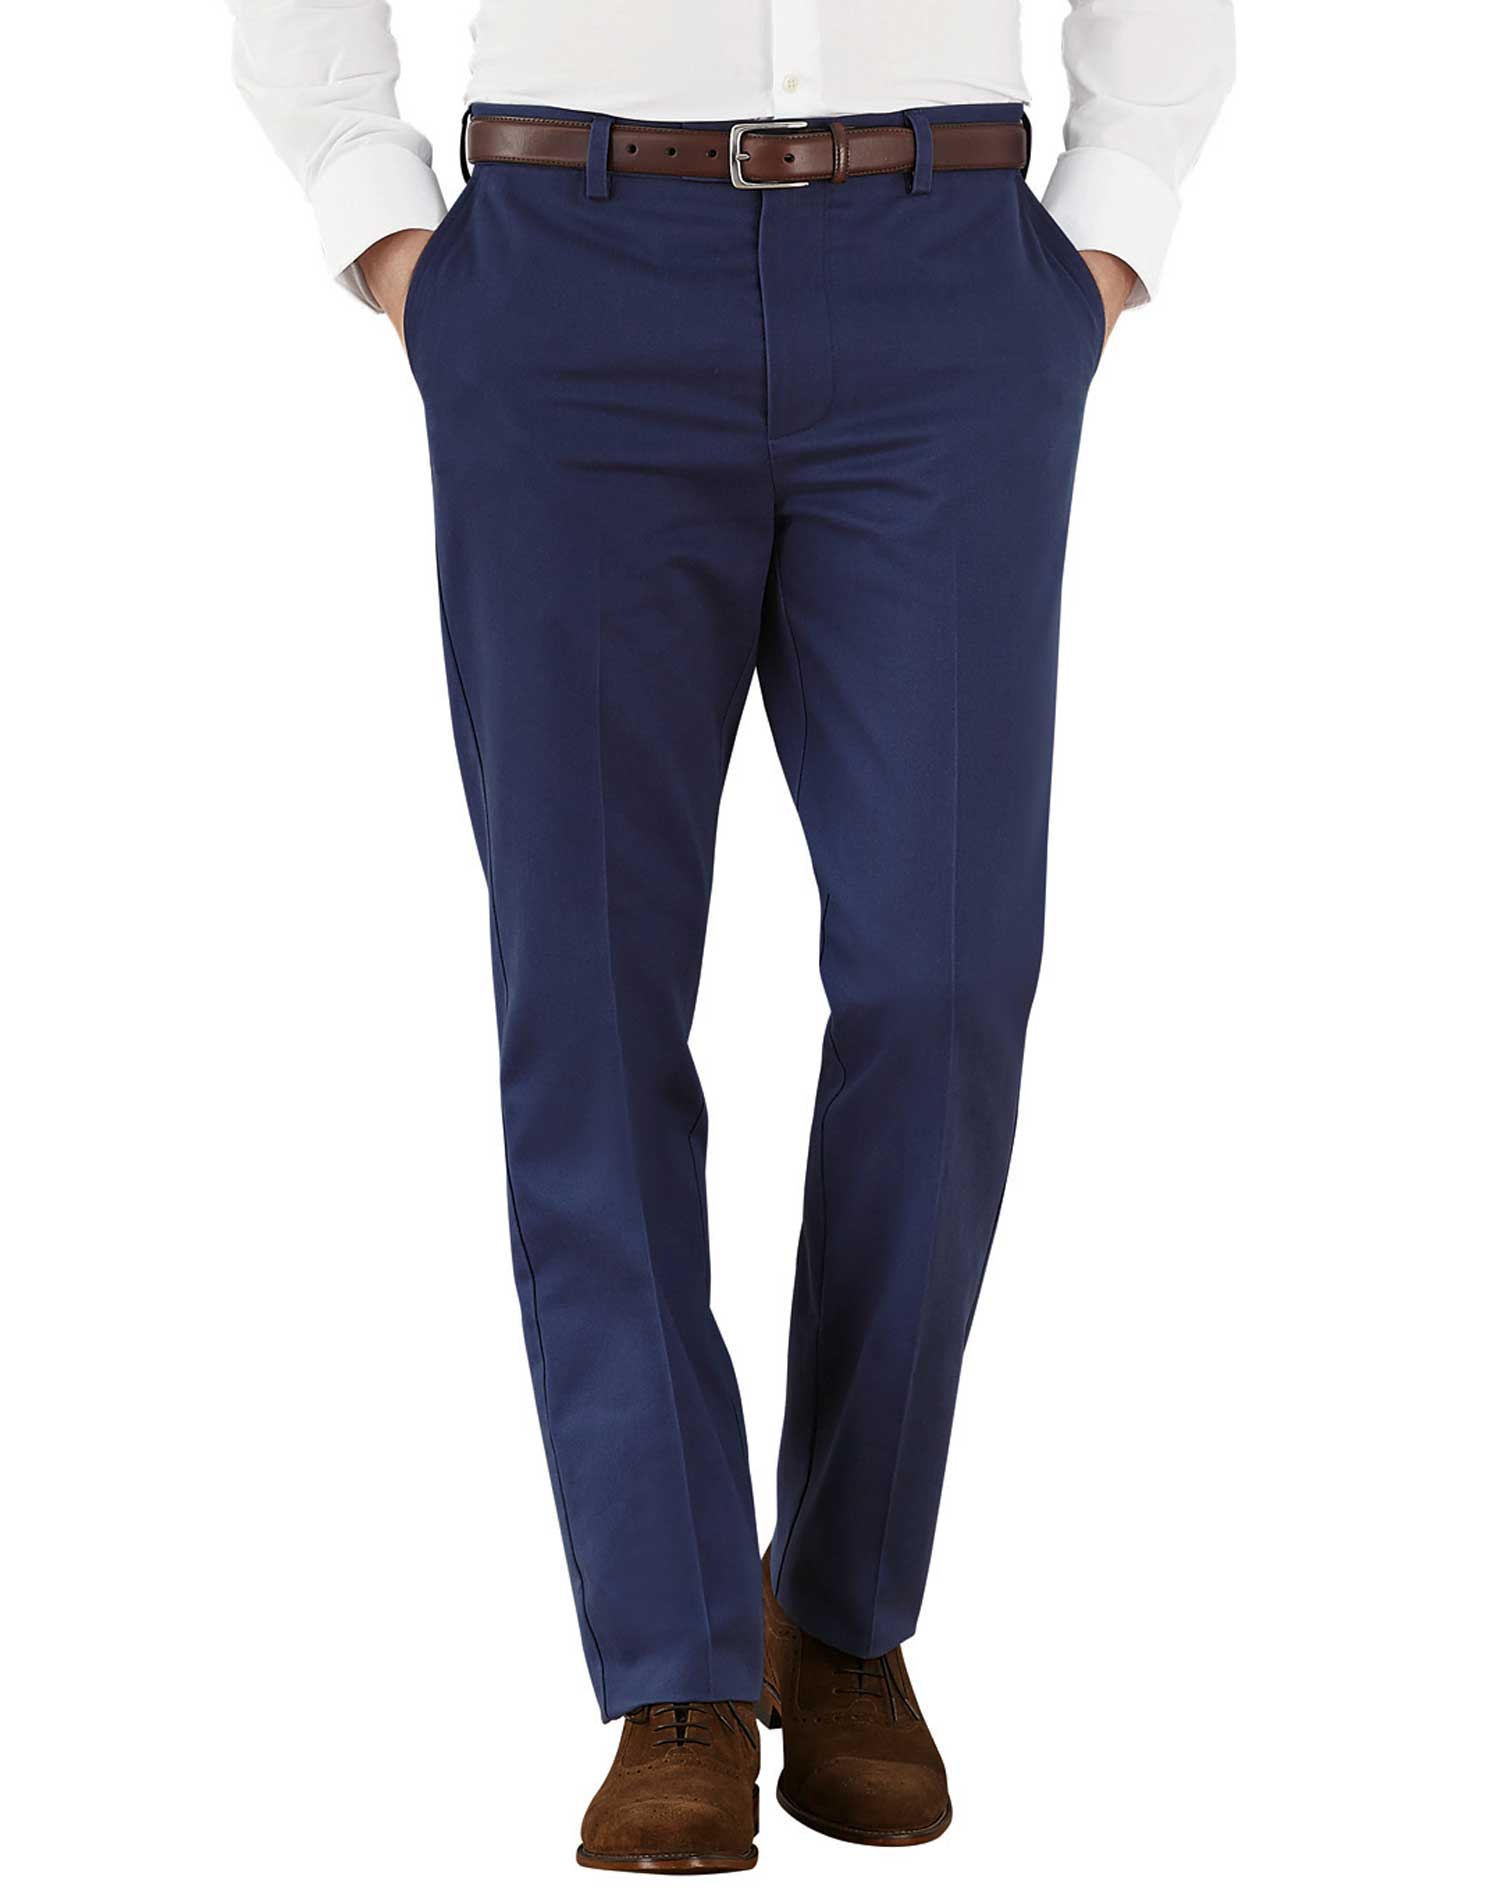 Marine Blue Slim Fit Flat Front Non-Iron Cotton Chino Trousers Size W34 L34 by Charles Tyrwhitt